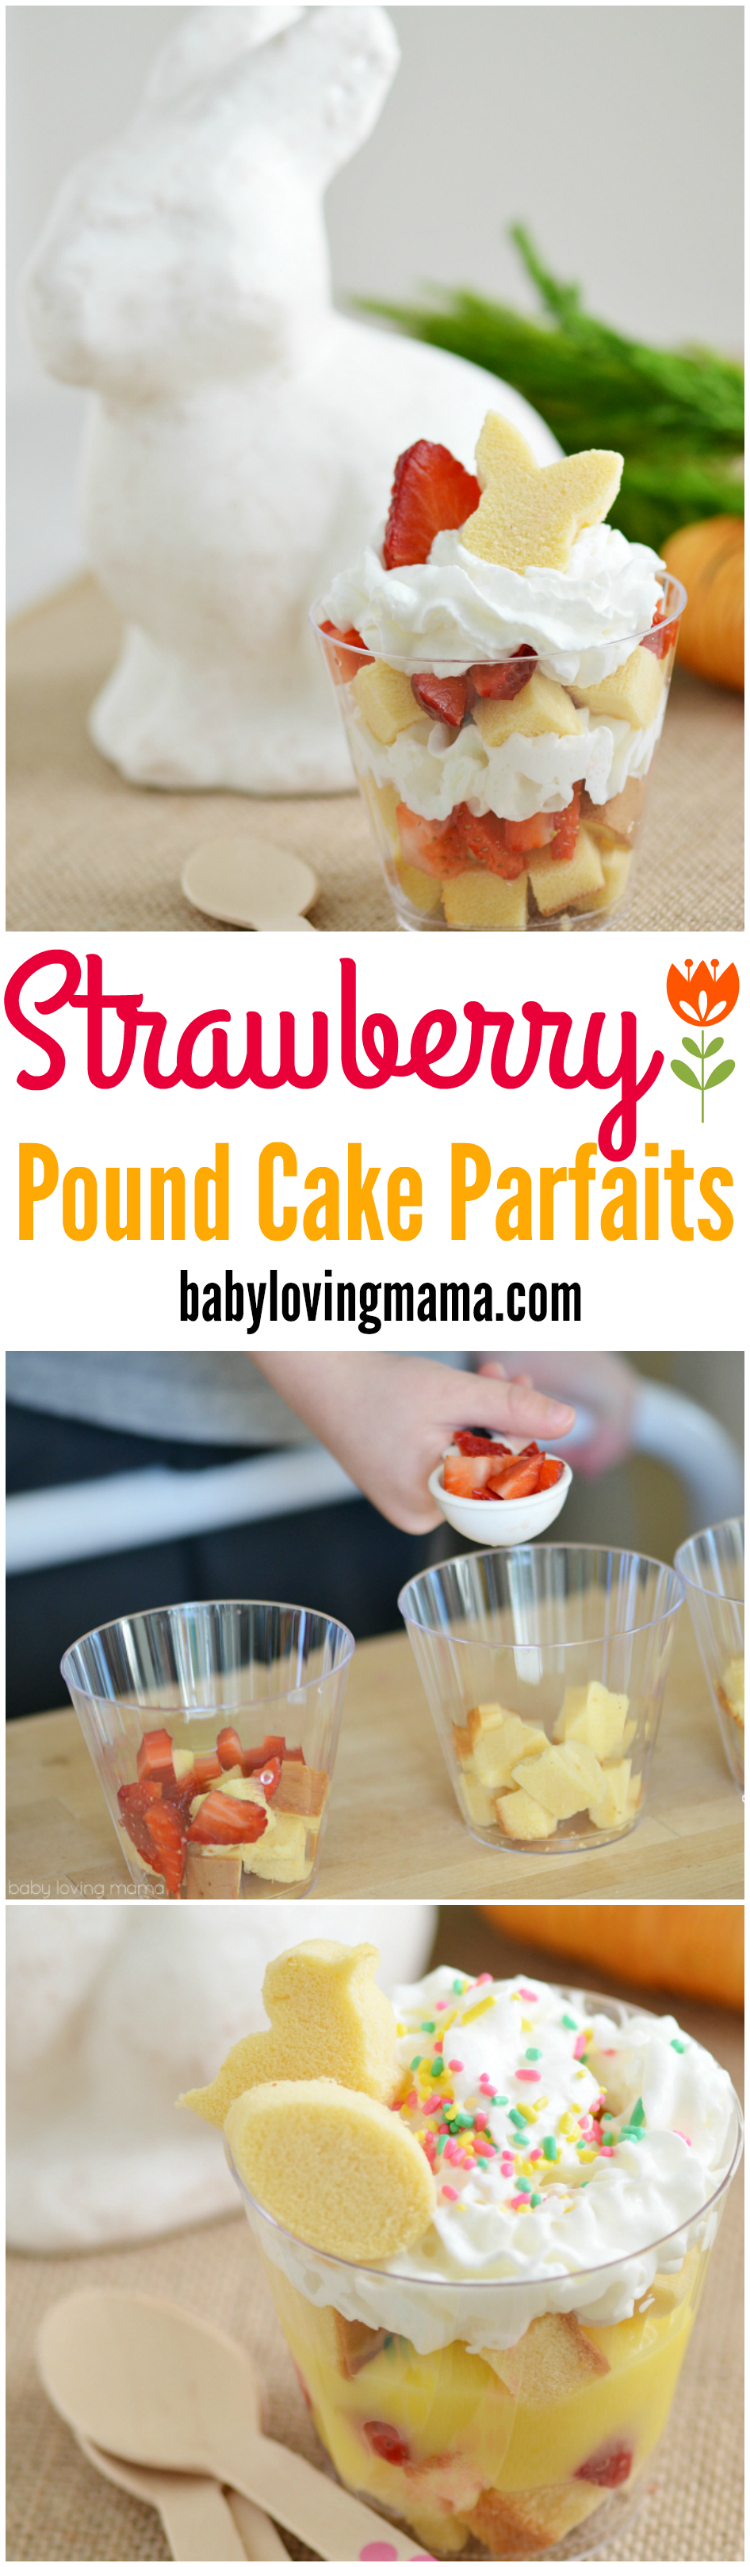 Strawberry Pound Cake Parfaits for Spring